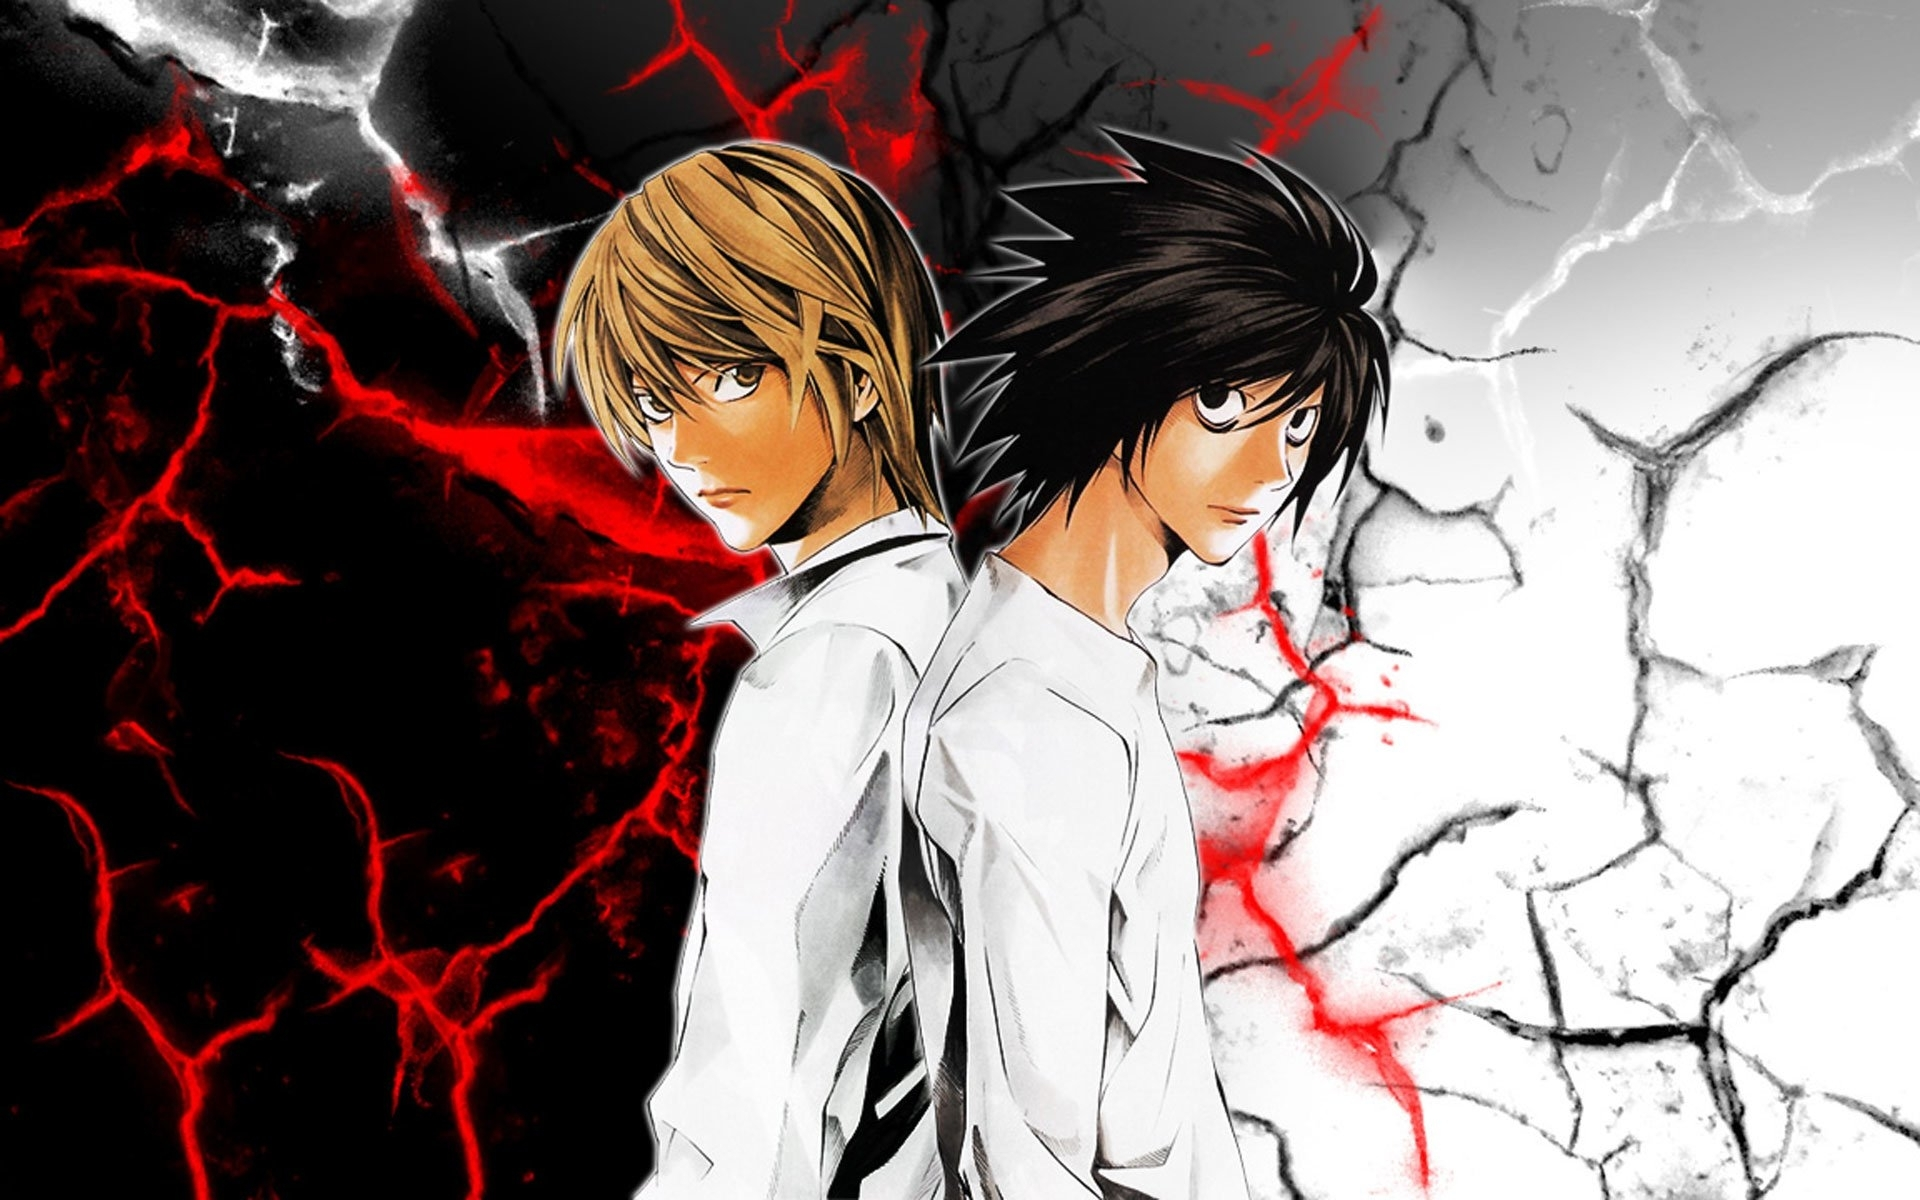 84 death note fonds d'écran hd | arrière-plans - wallpaper abyss